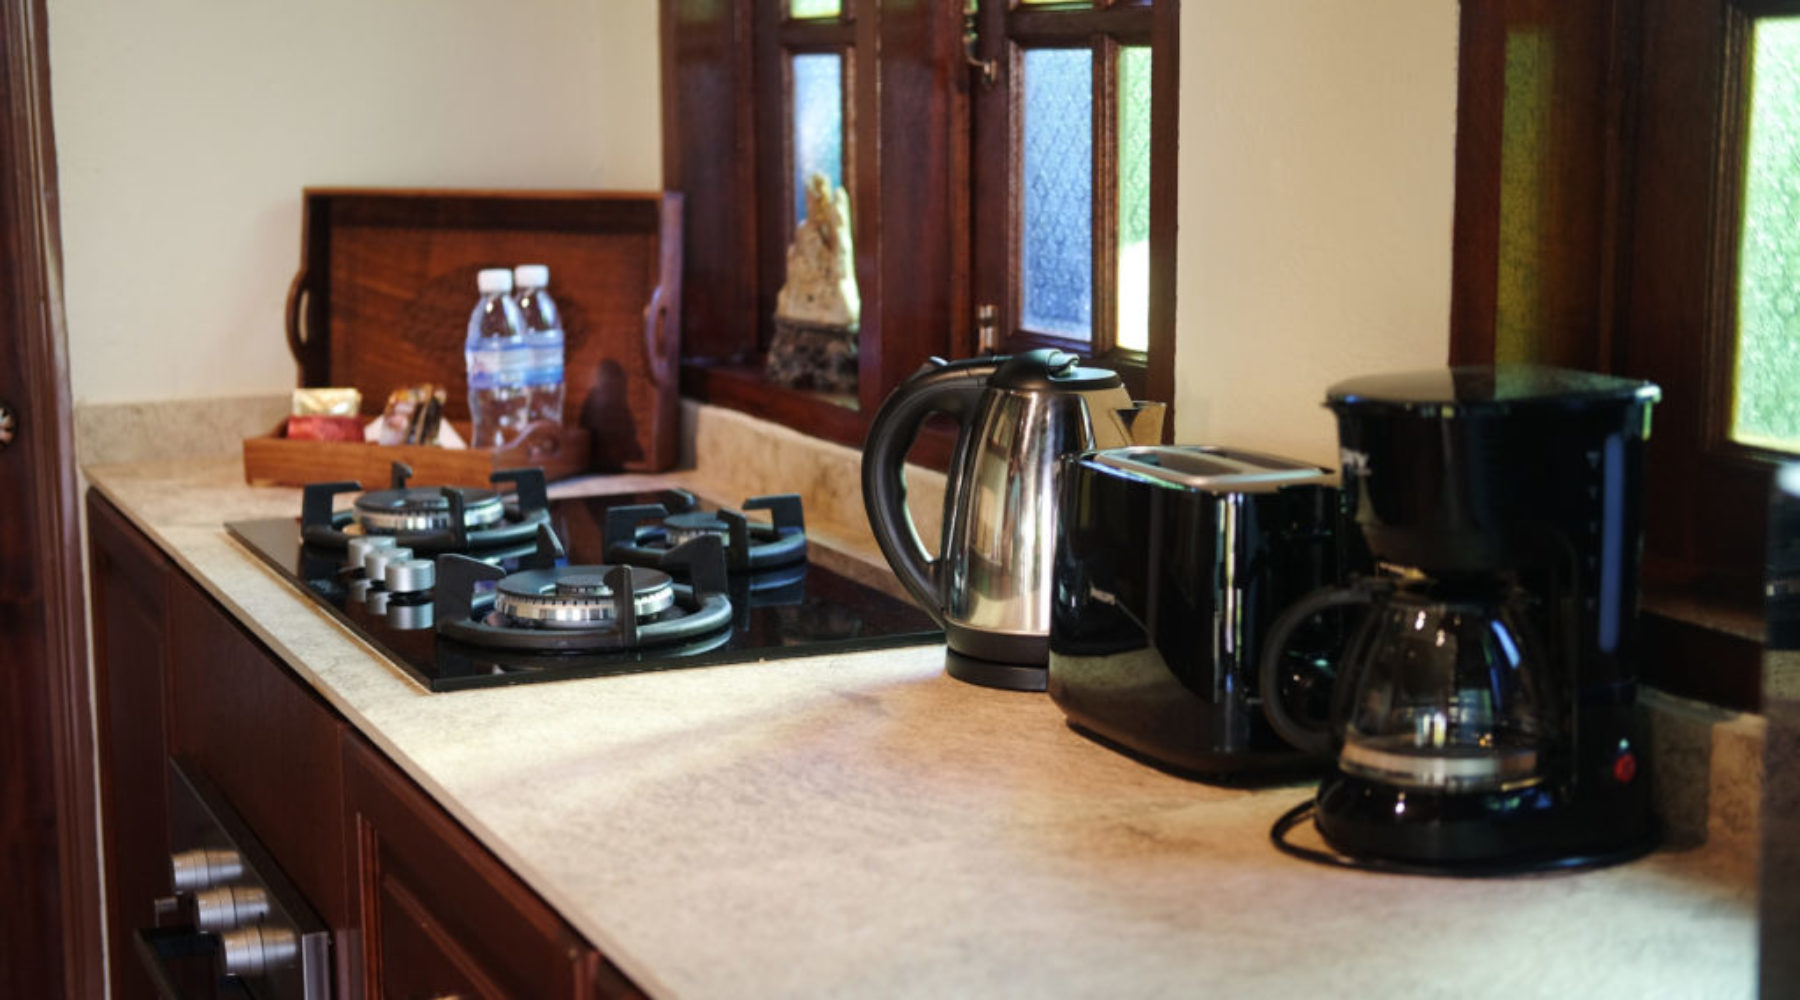 Langkawi Villa Cathaya fully equipped kitchen for self-catering holidays